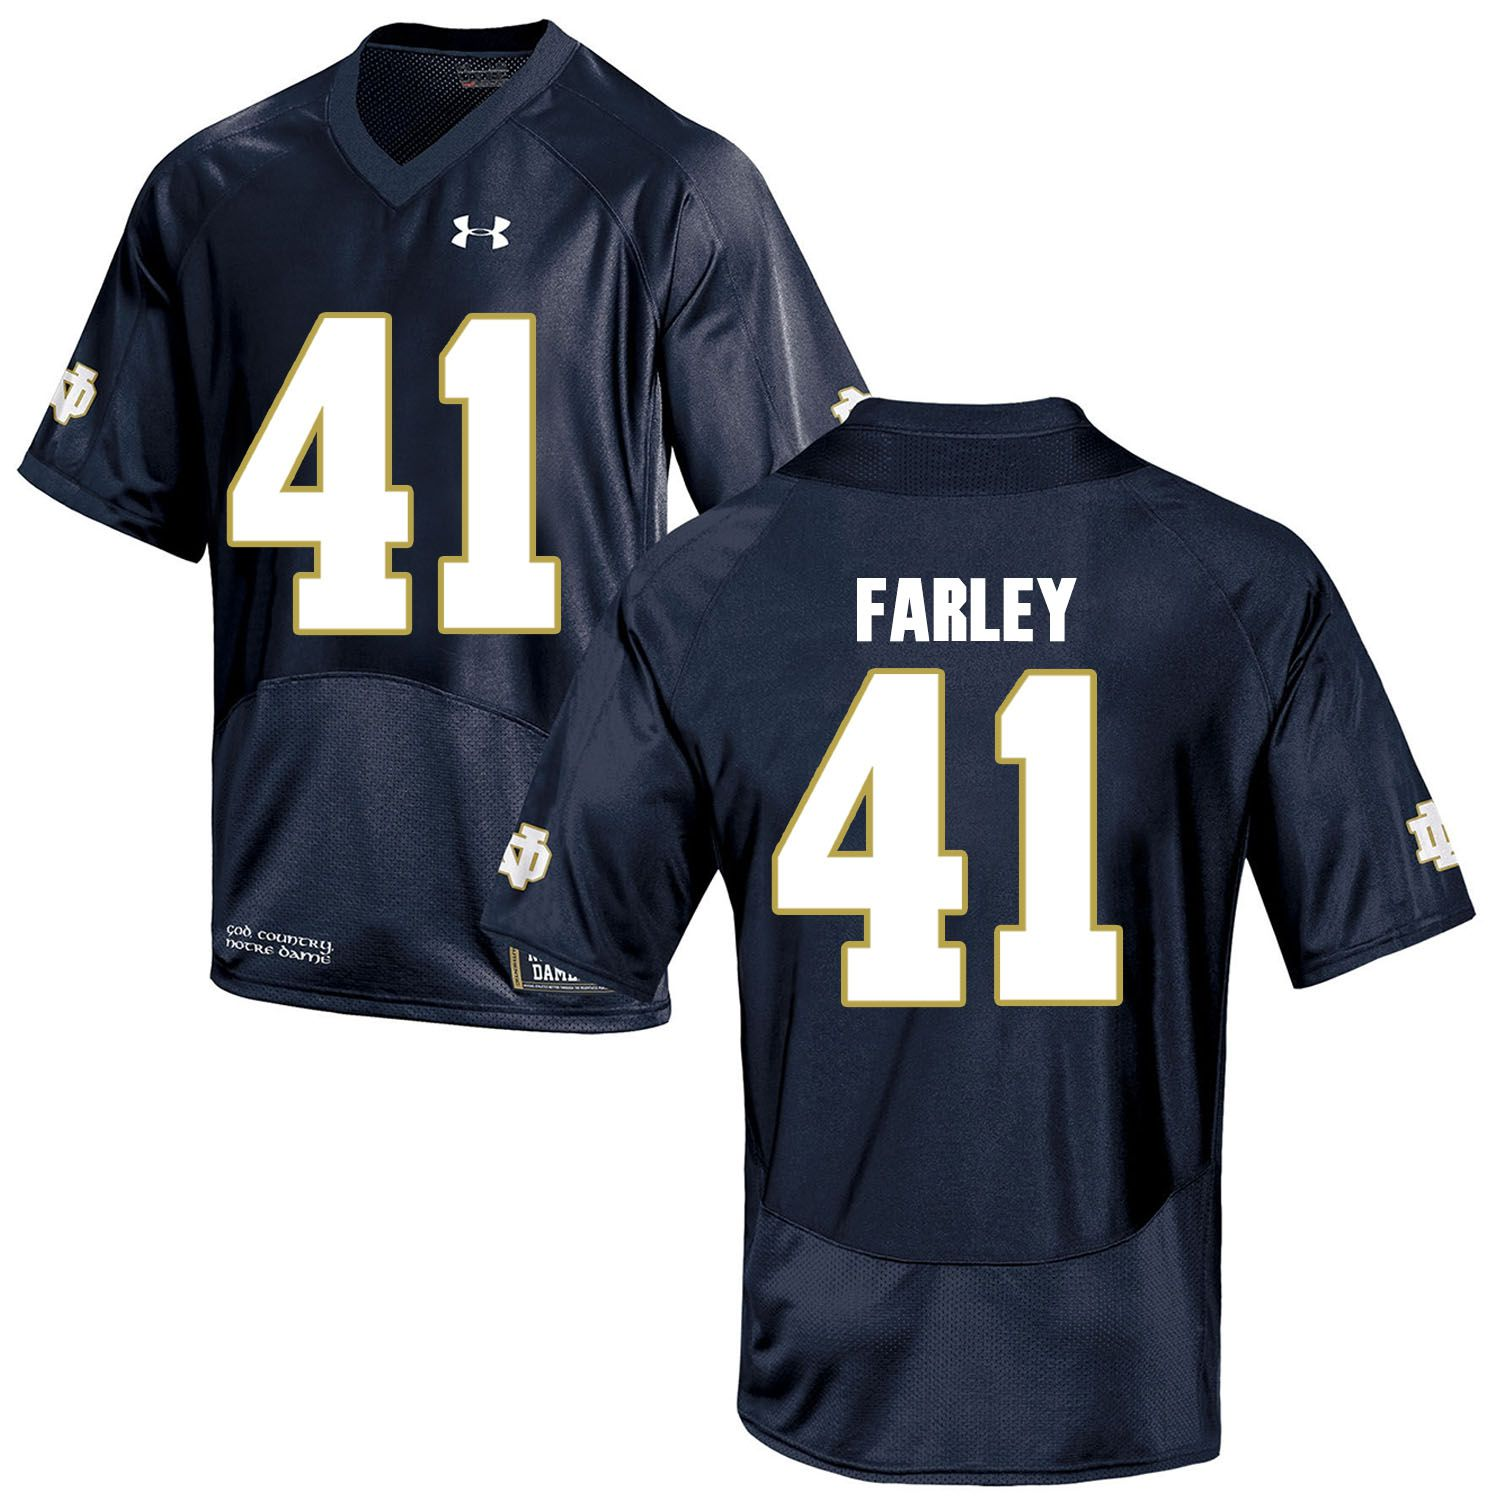 Men Norte Dame Fighting Irish 41 Farley Navy Blue Customized NCAA Jerseys